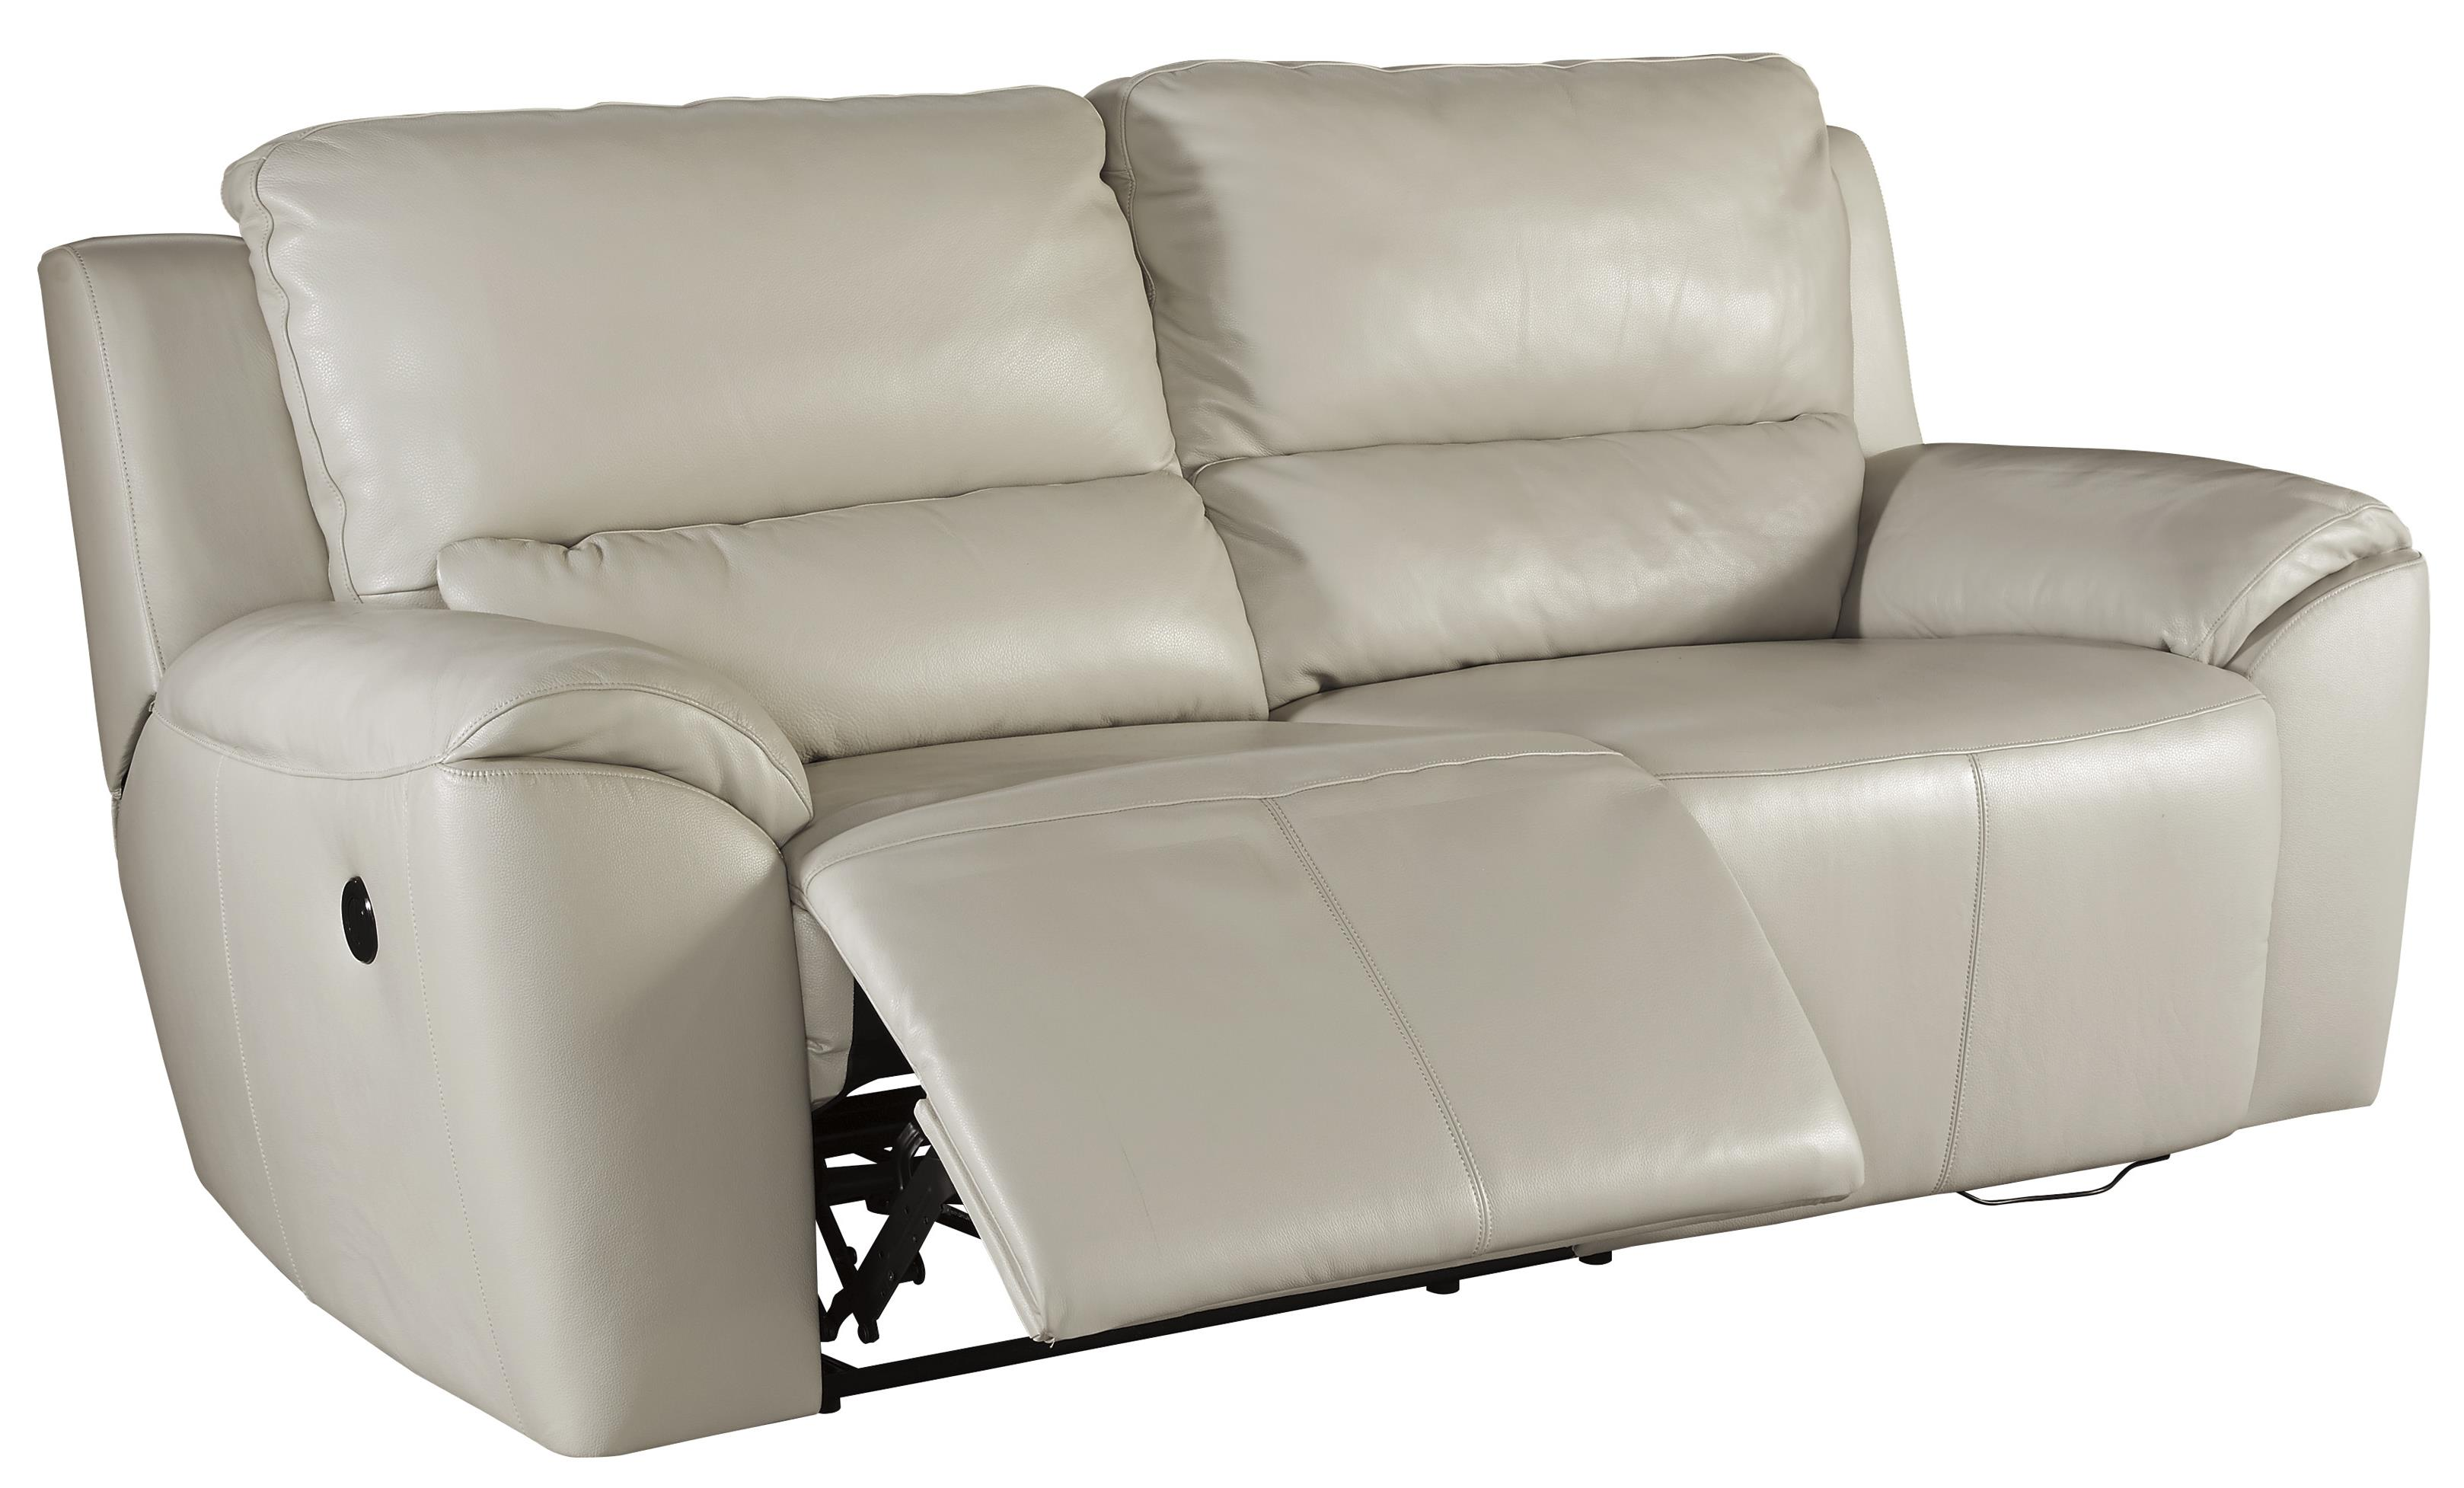 Contemporary Leather Match 2 Seat Reclining Power Sofa by